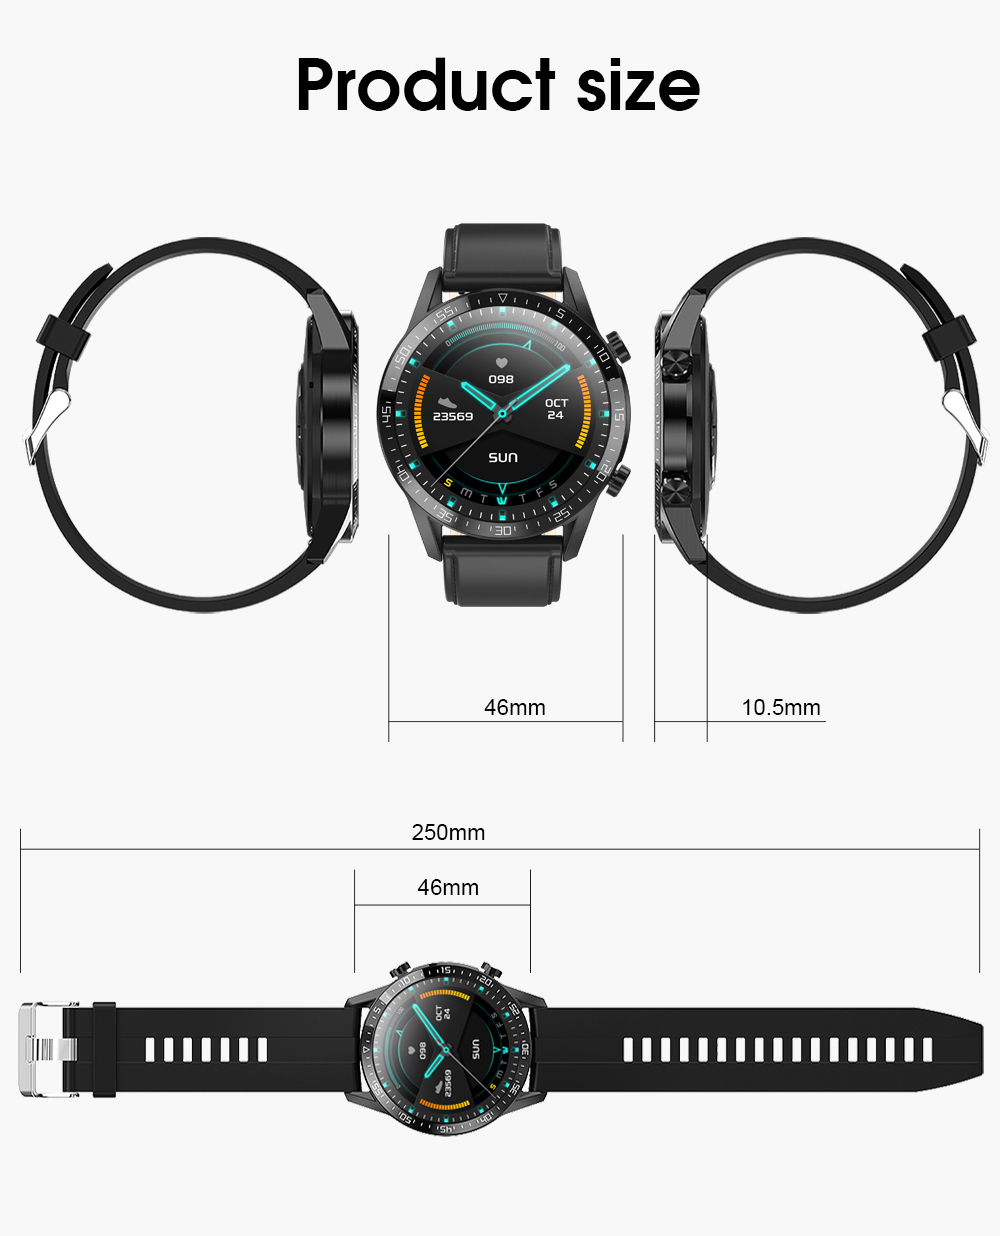 H0b163a4bf5e74bdbbdcb4fcf48dd019eB Timewolf IP68 Smart Watch Men Android 2020 Full Touch Smartwatch Men Women Smart Watch For Huawei Xiaomi Apple IOS Android Phone